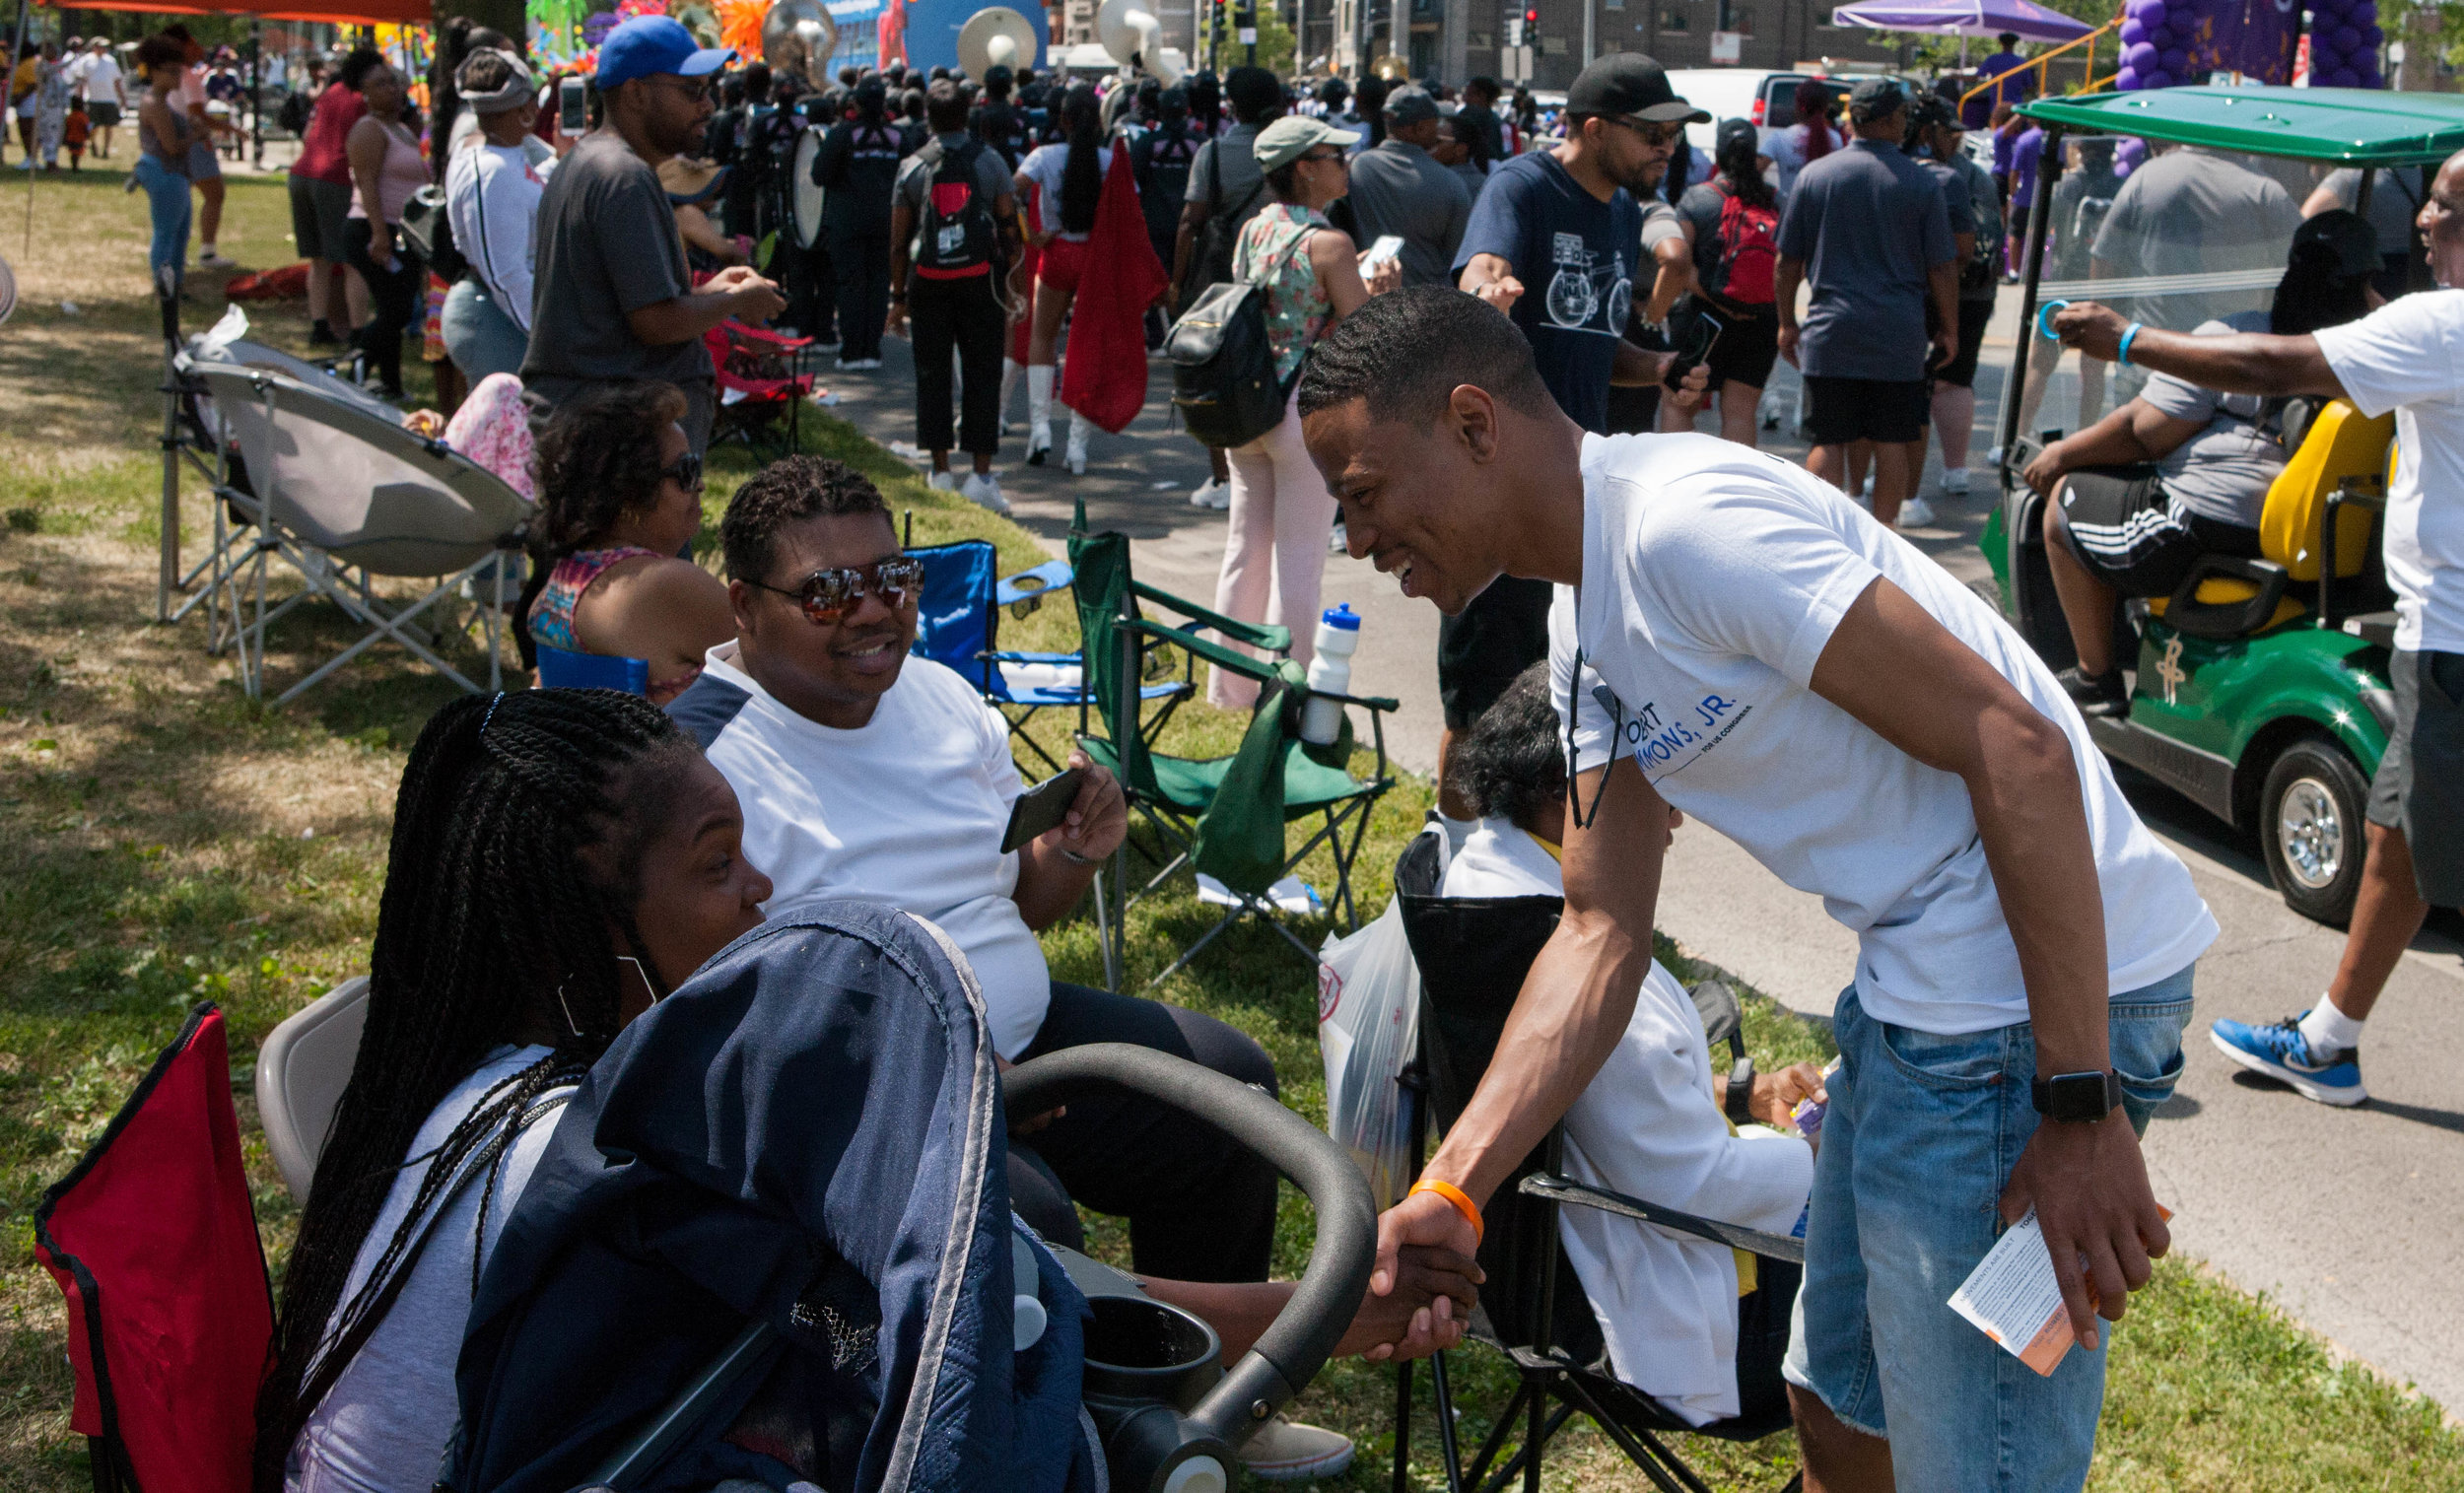 Robert shakes the hand of a supporter from at the edge of the Bud Billiken Parade.